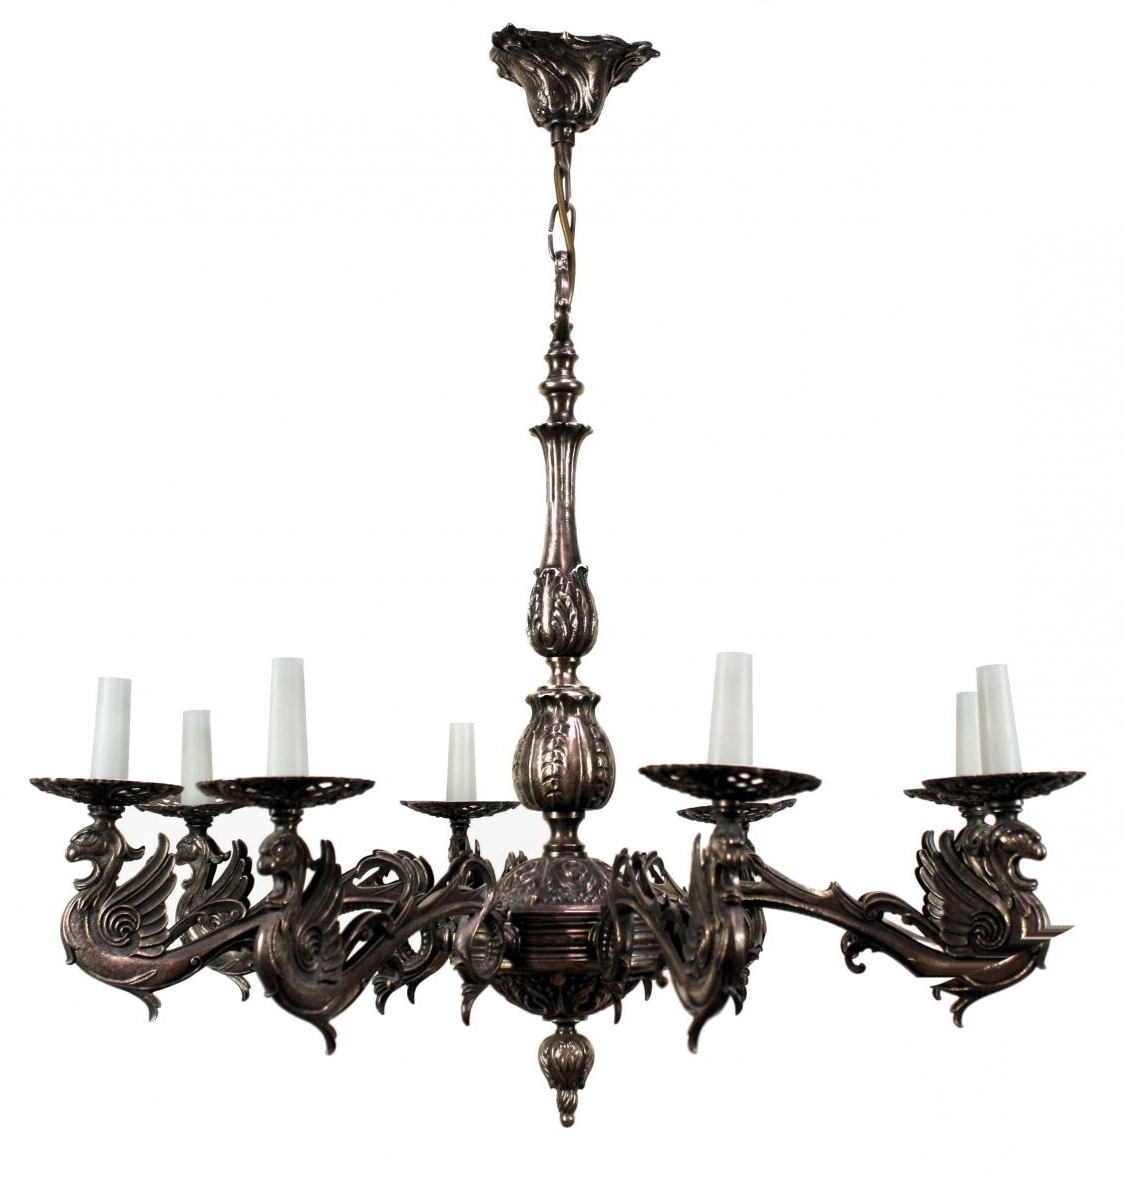 Favorite French Silvered Bronze Gothic Style Chandelier, 1900S For Sale At Pamono In French Style Chandelier (View 7 of 20)